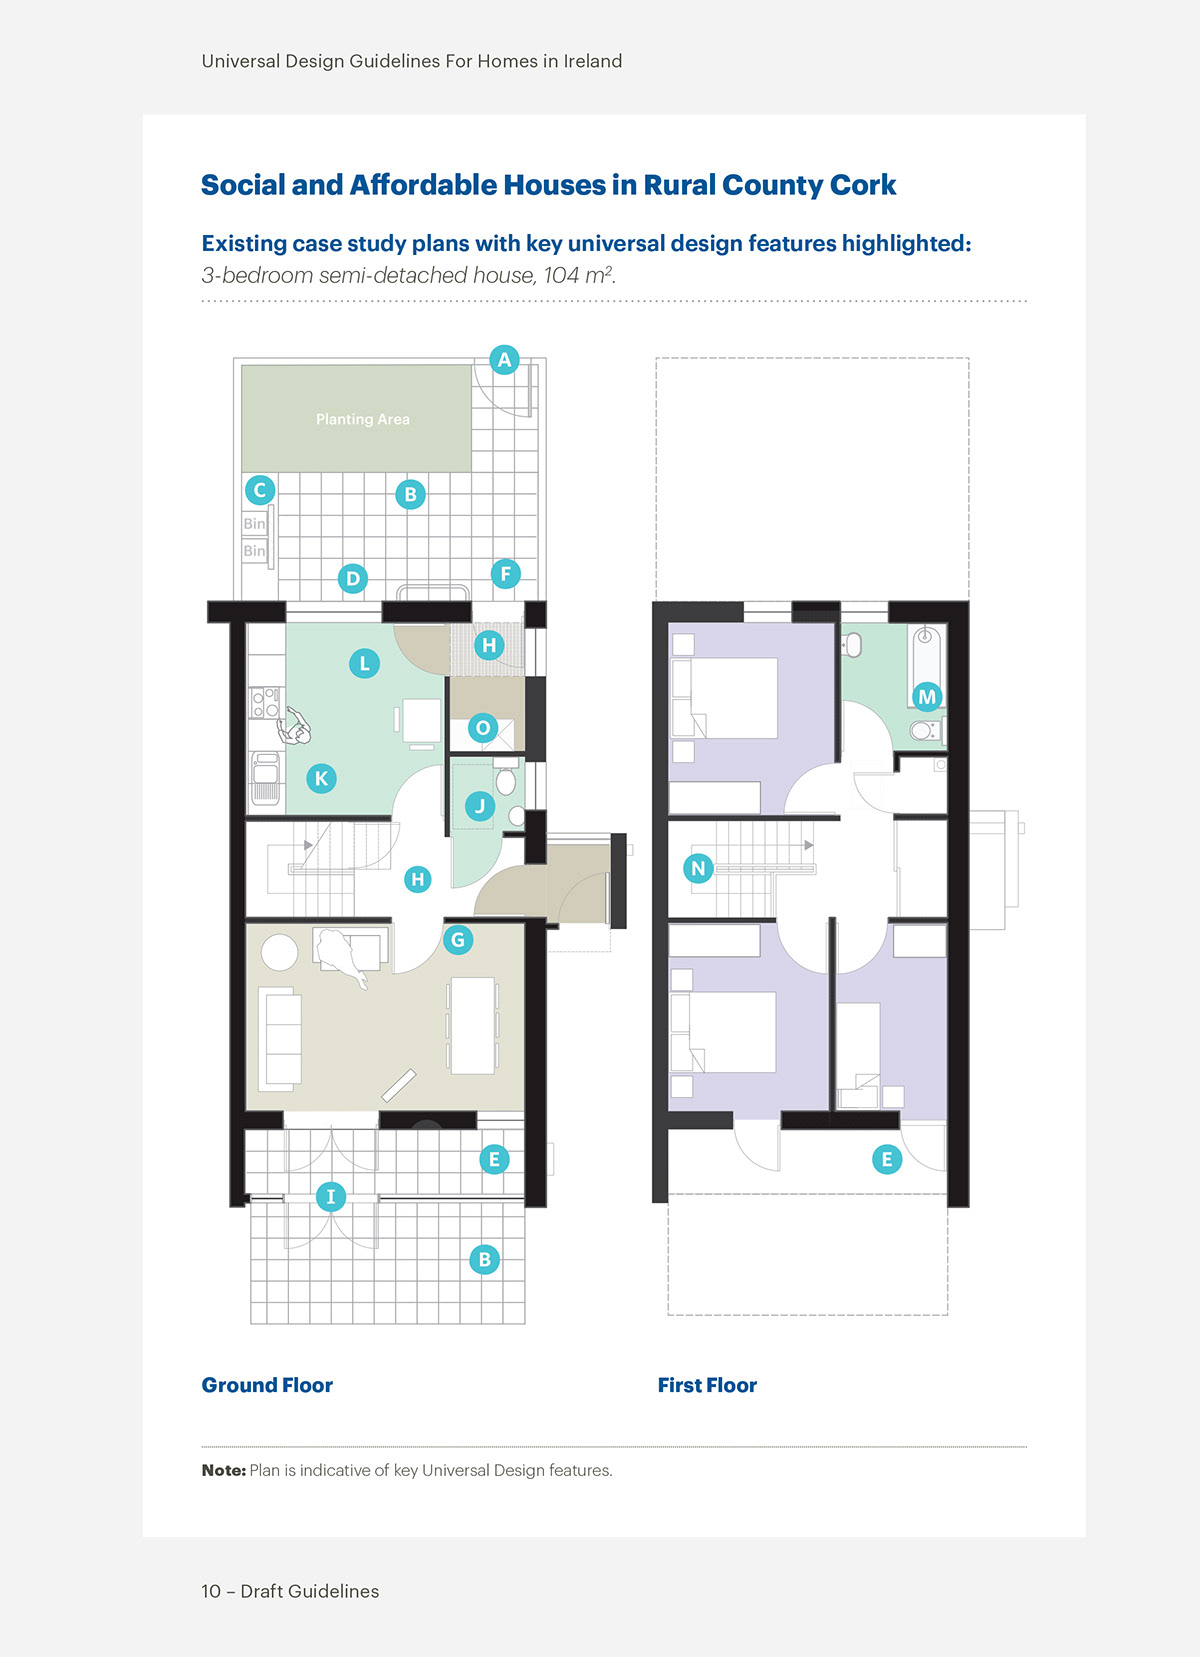 Guidelines on Universal Design Homes for Ireland on Behance